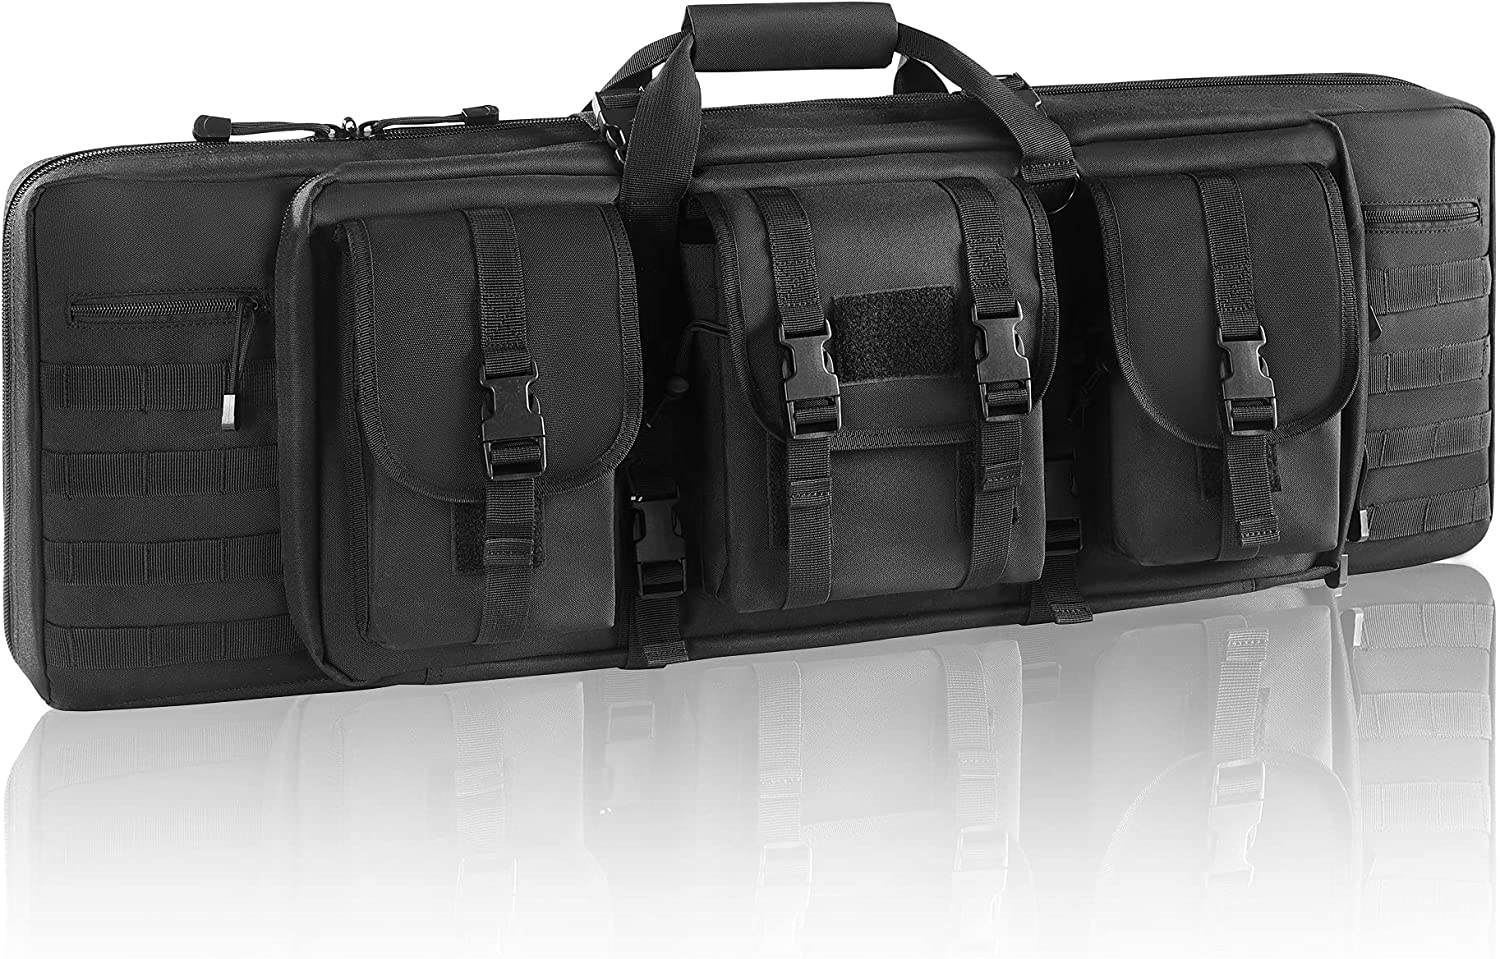 GUAWIN Rifle Bag Our shop OFFers the best service Case Shotgun store Reinforced S Heavy Duty